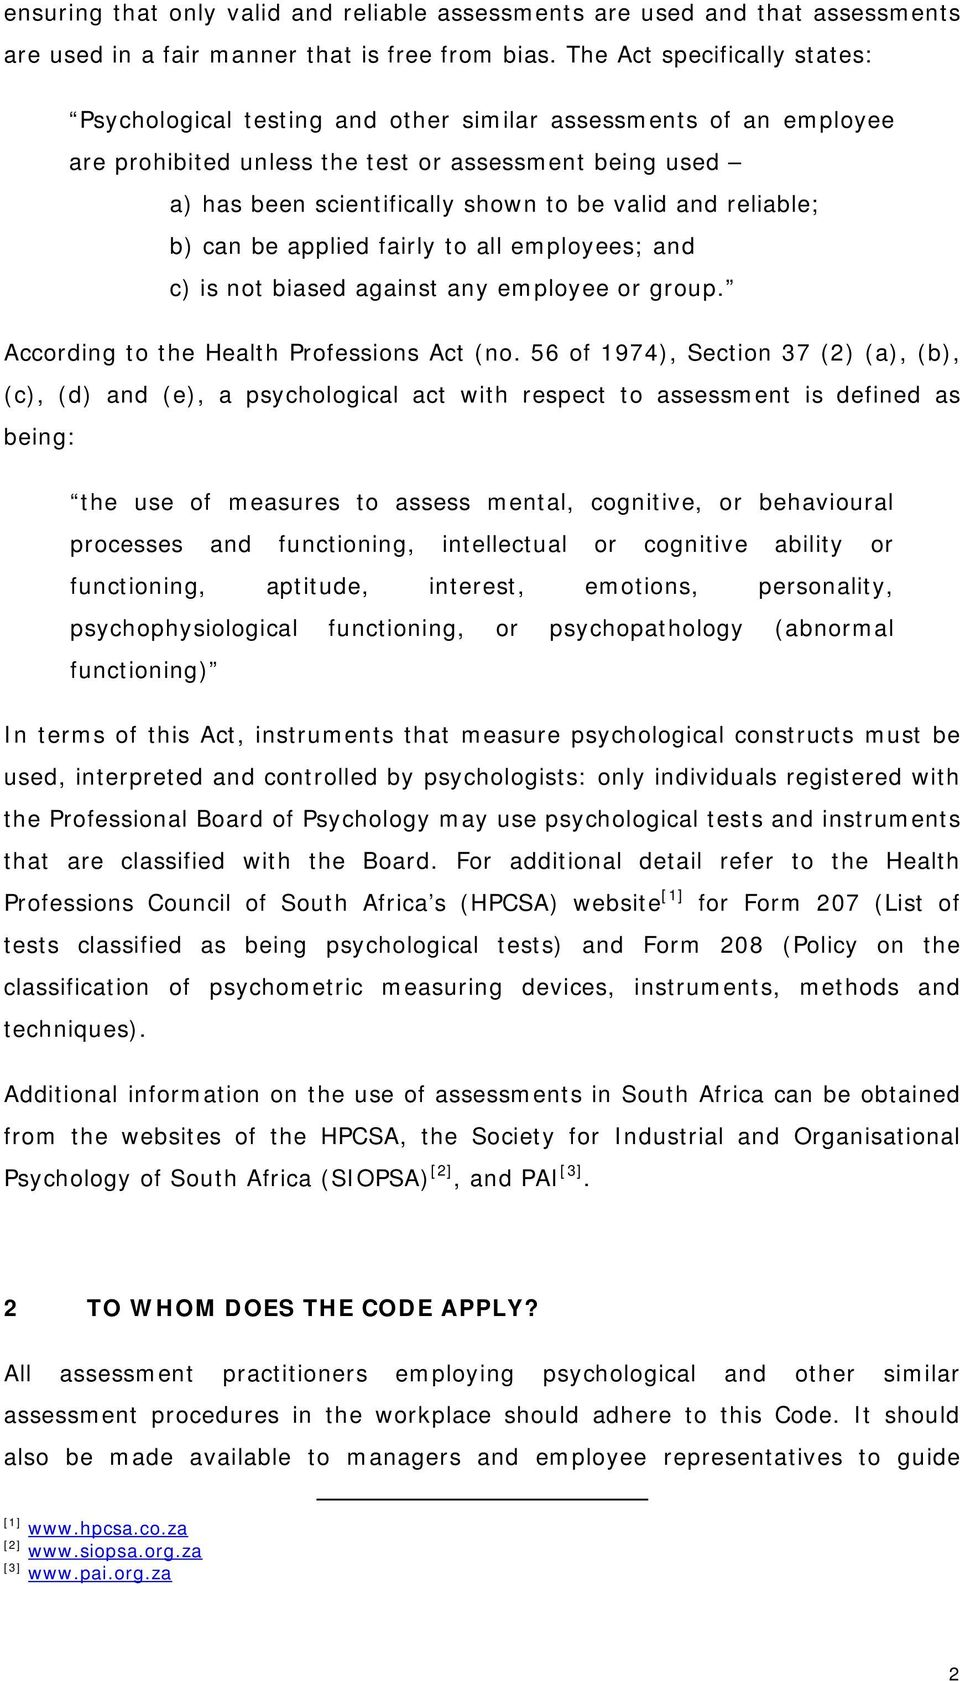 CODE OF PRACTICE FOR PSYCHOLOGICAL AND OTHER SIMILAR ASSESSMENT IN